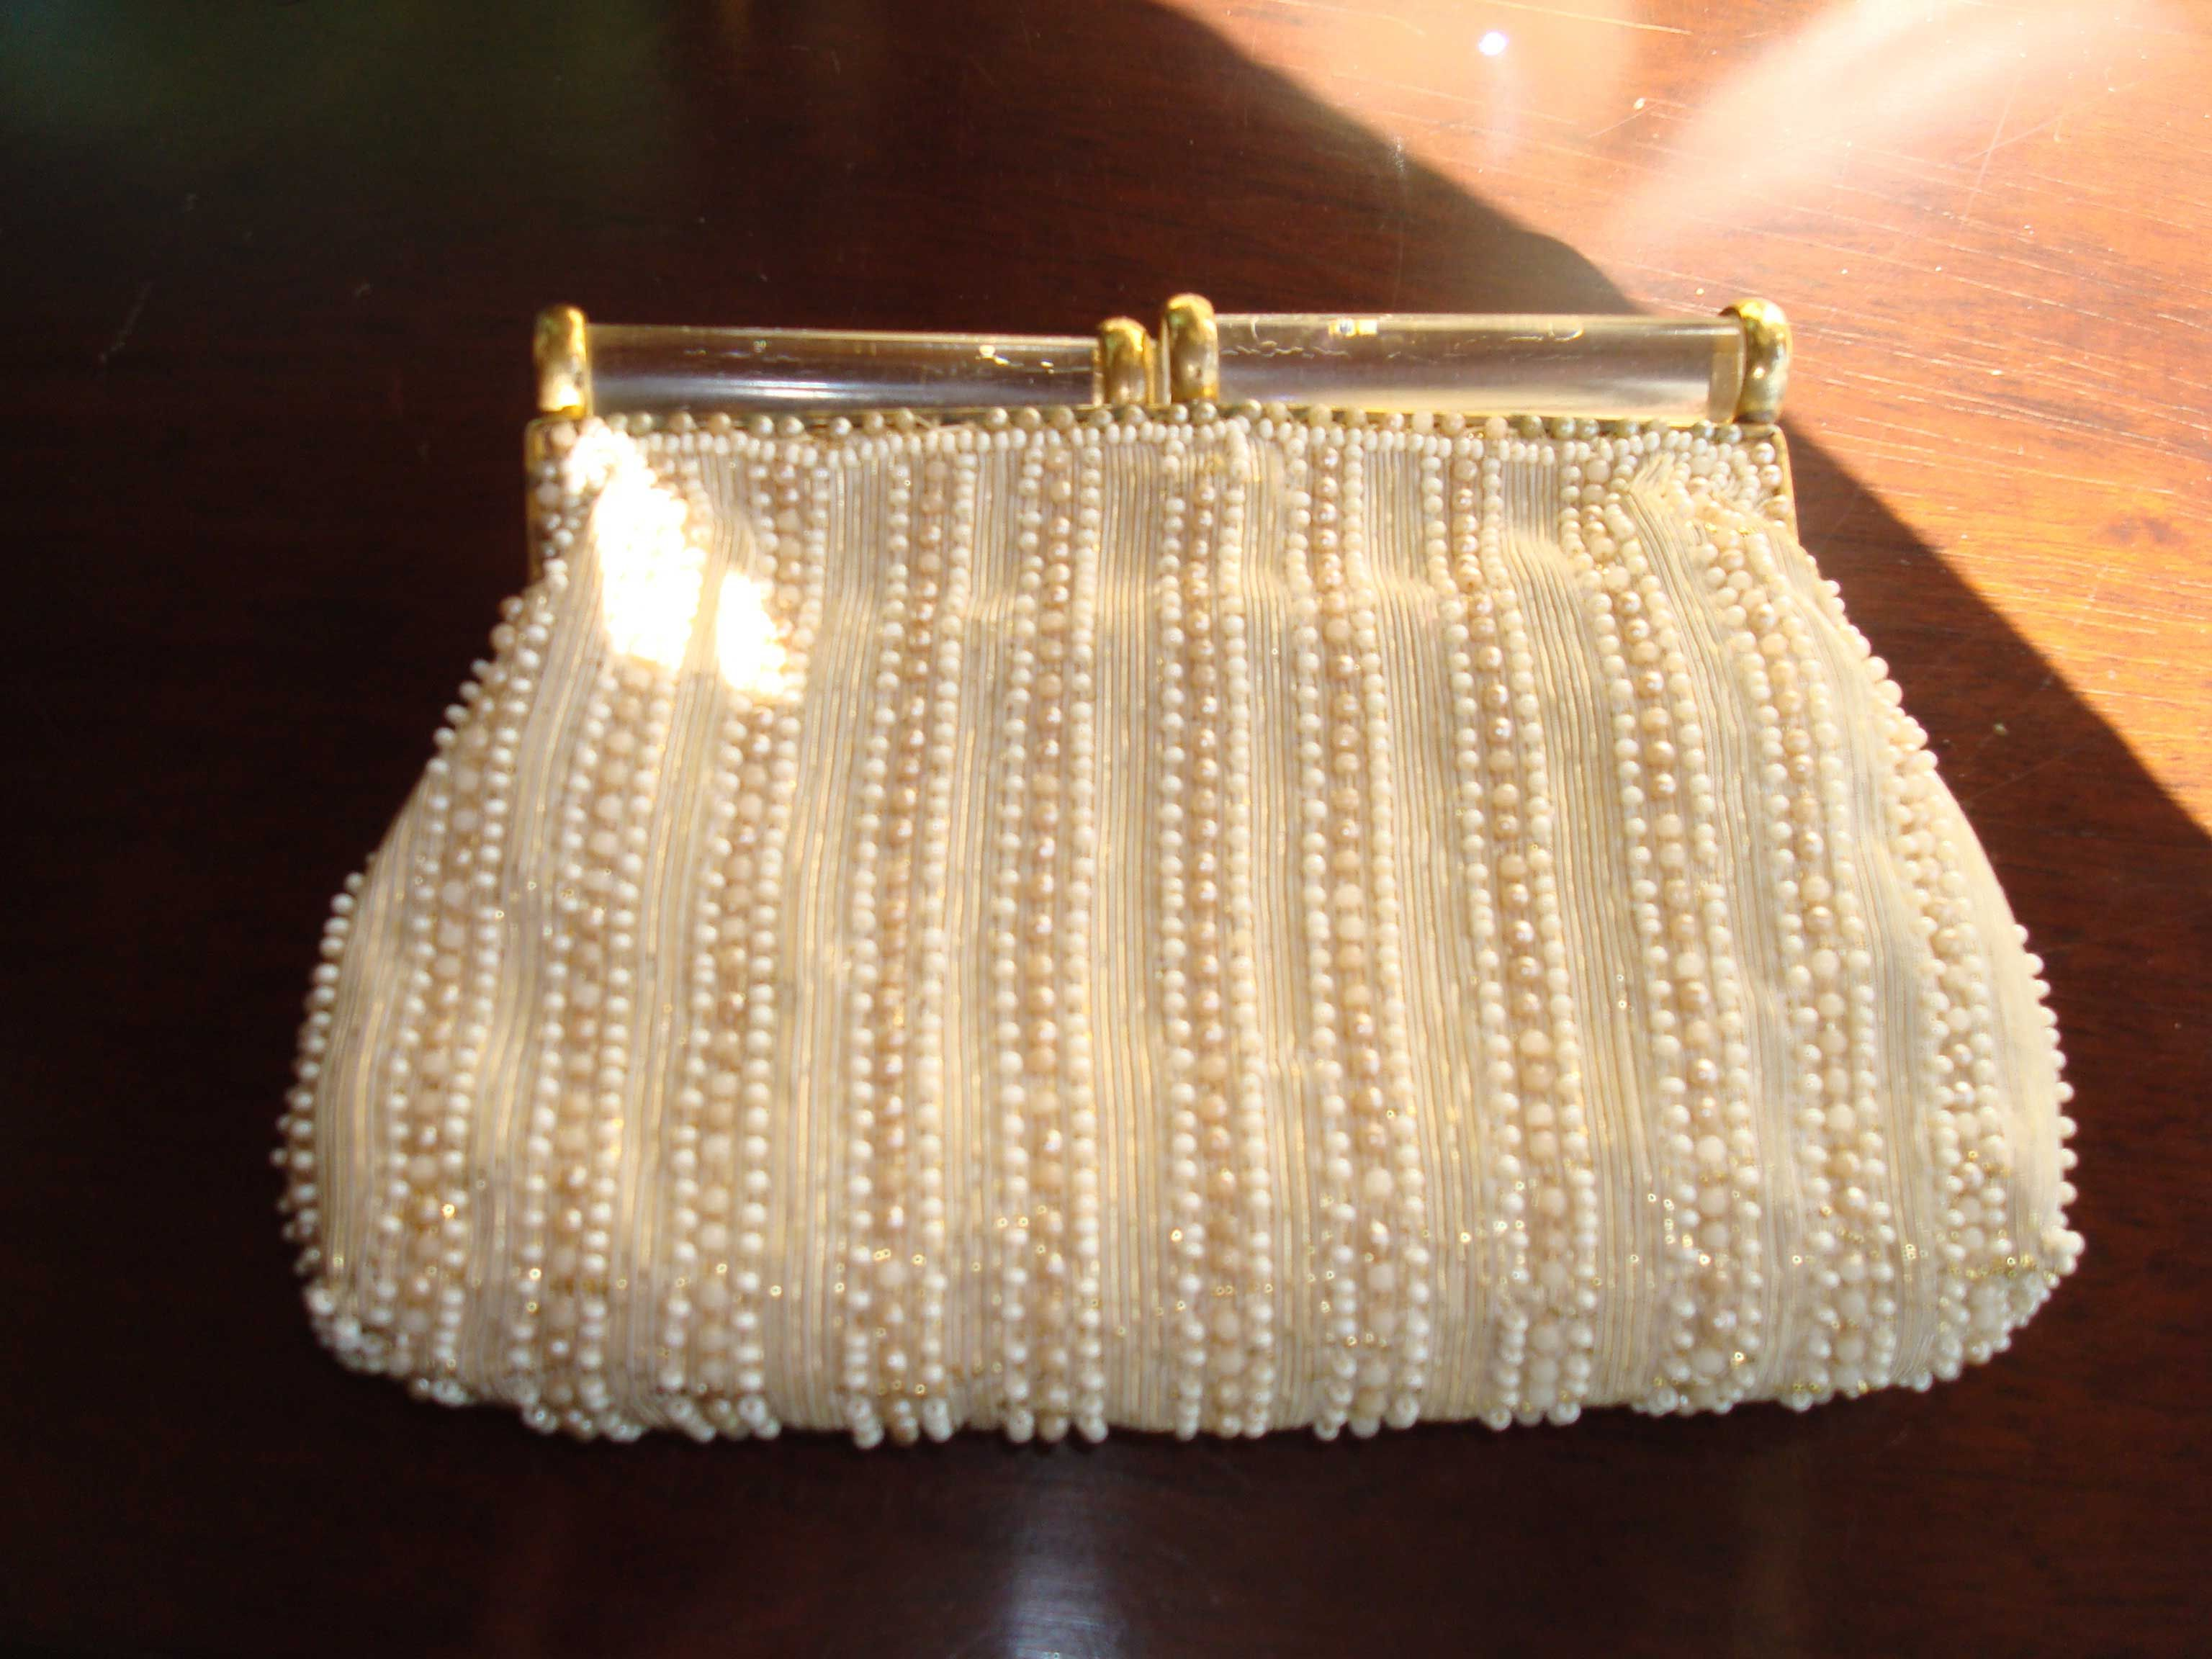 1930s Beaded clutch with lucite handles.